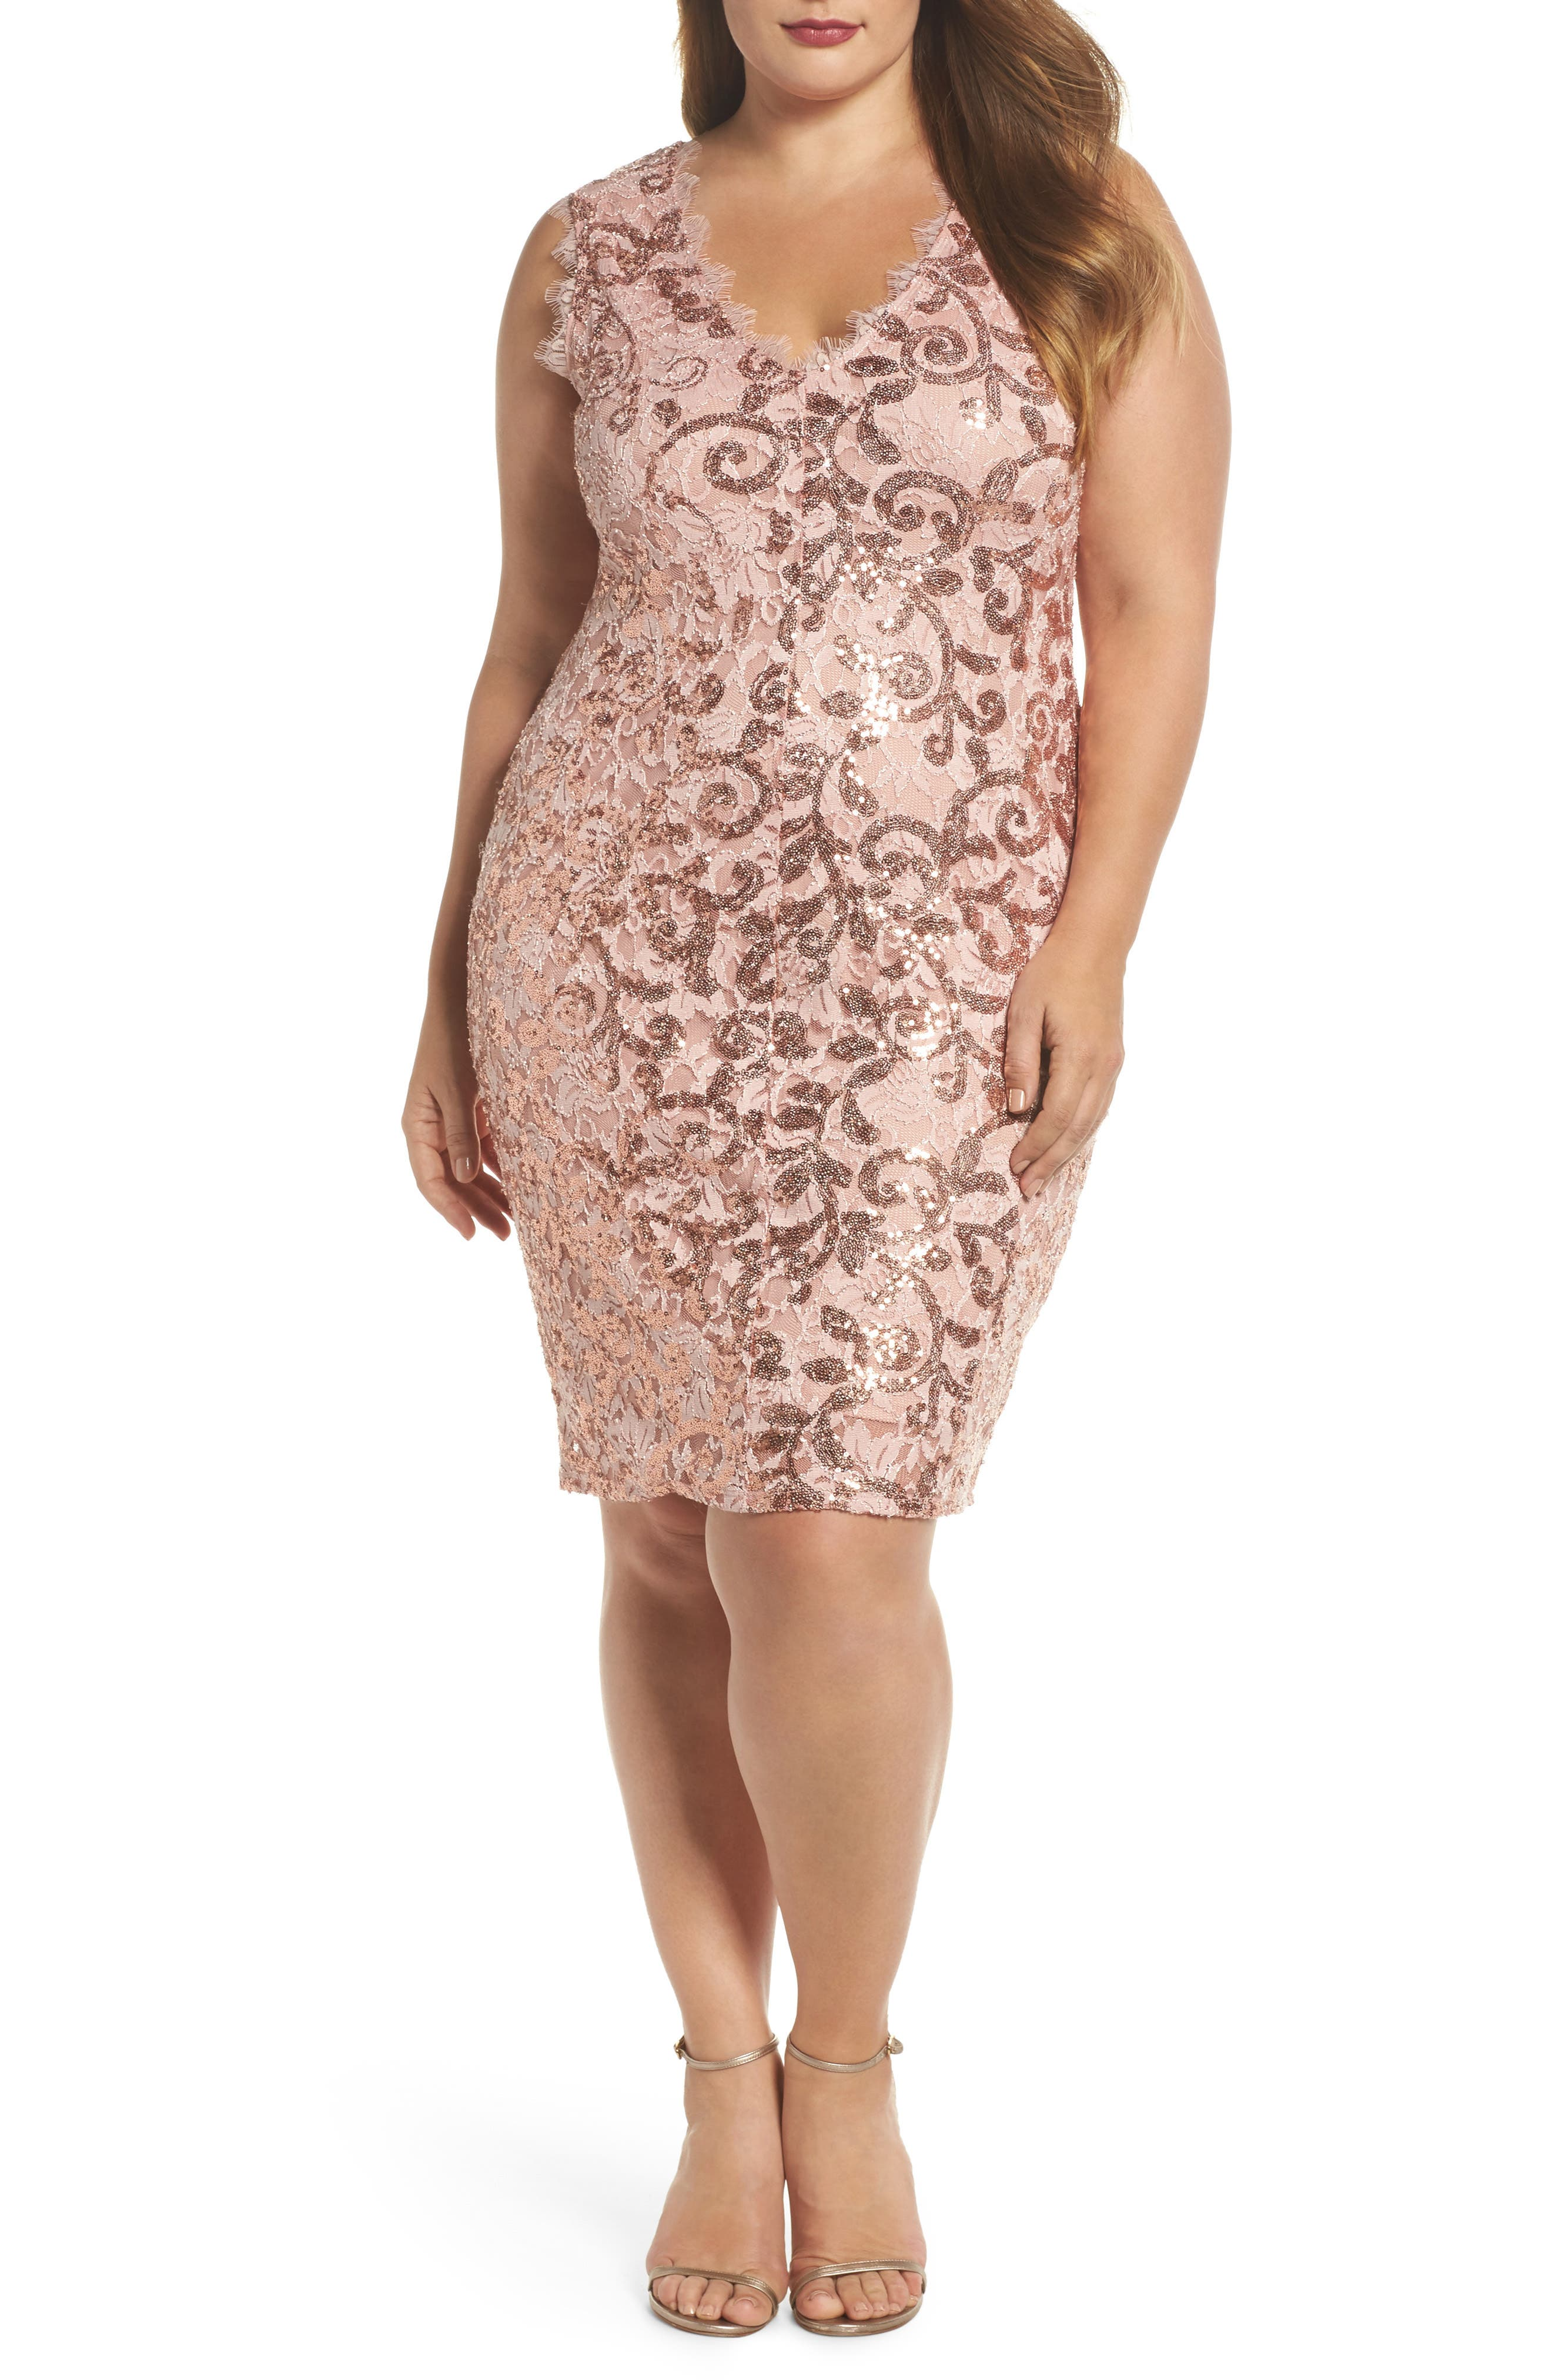 Marina Sequin Lace Party Dress (Plus Size)